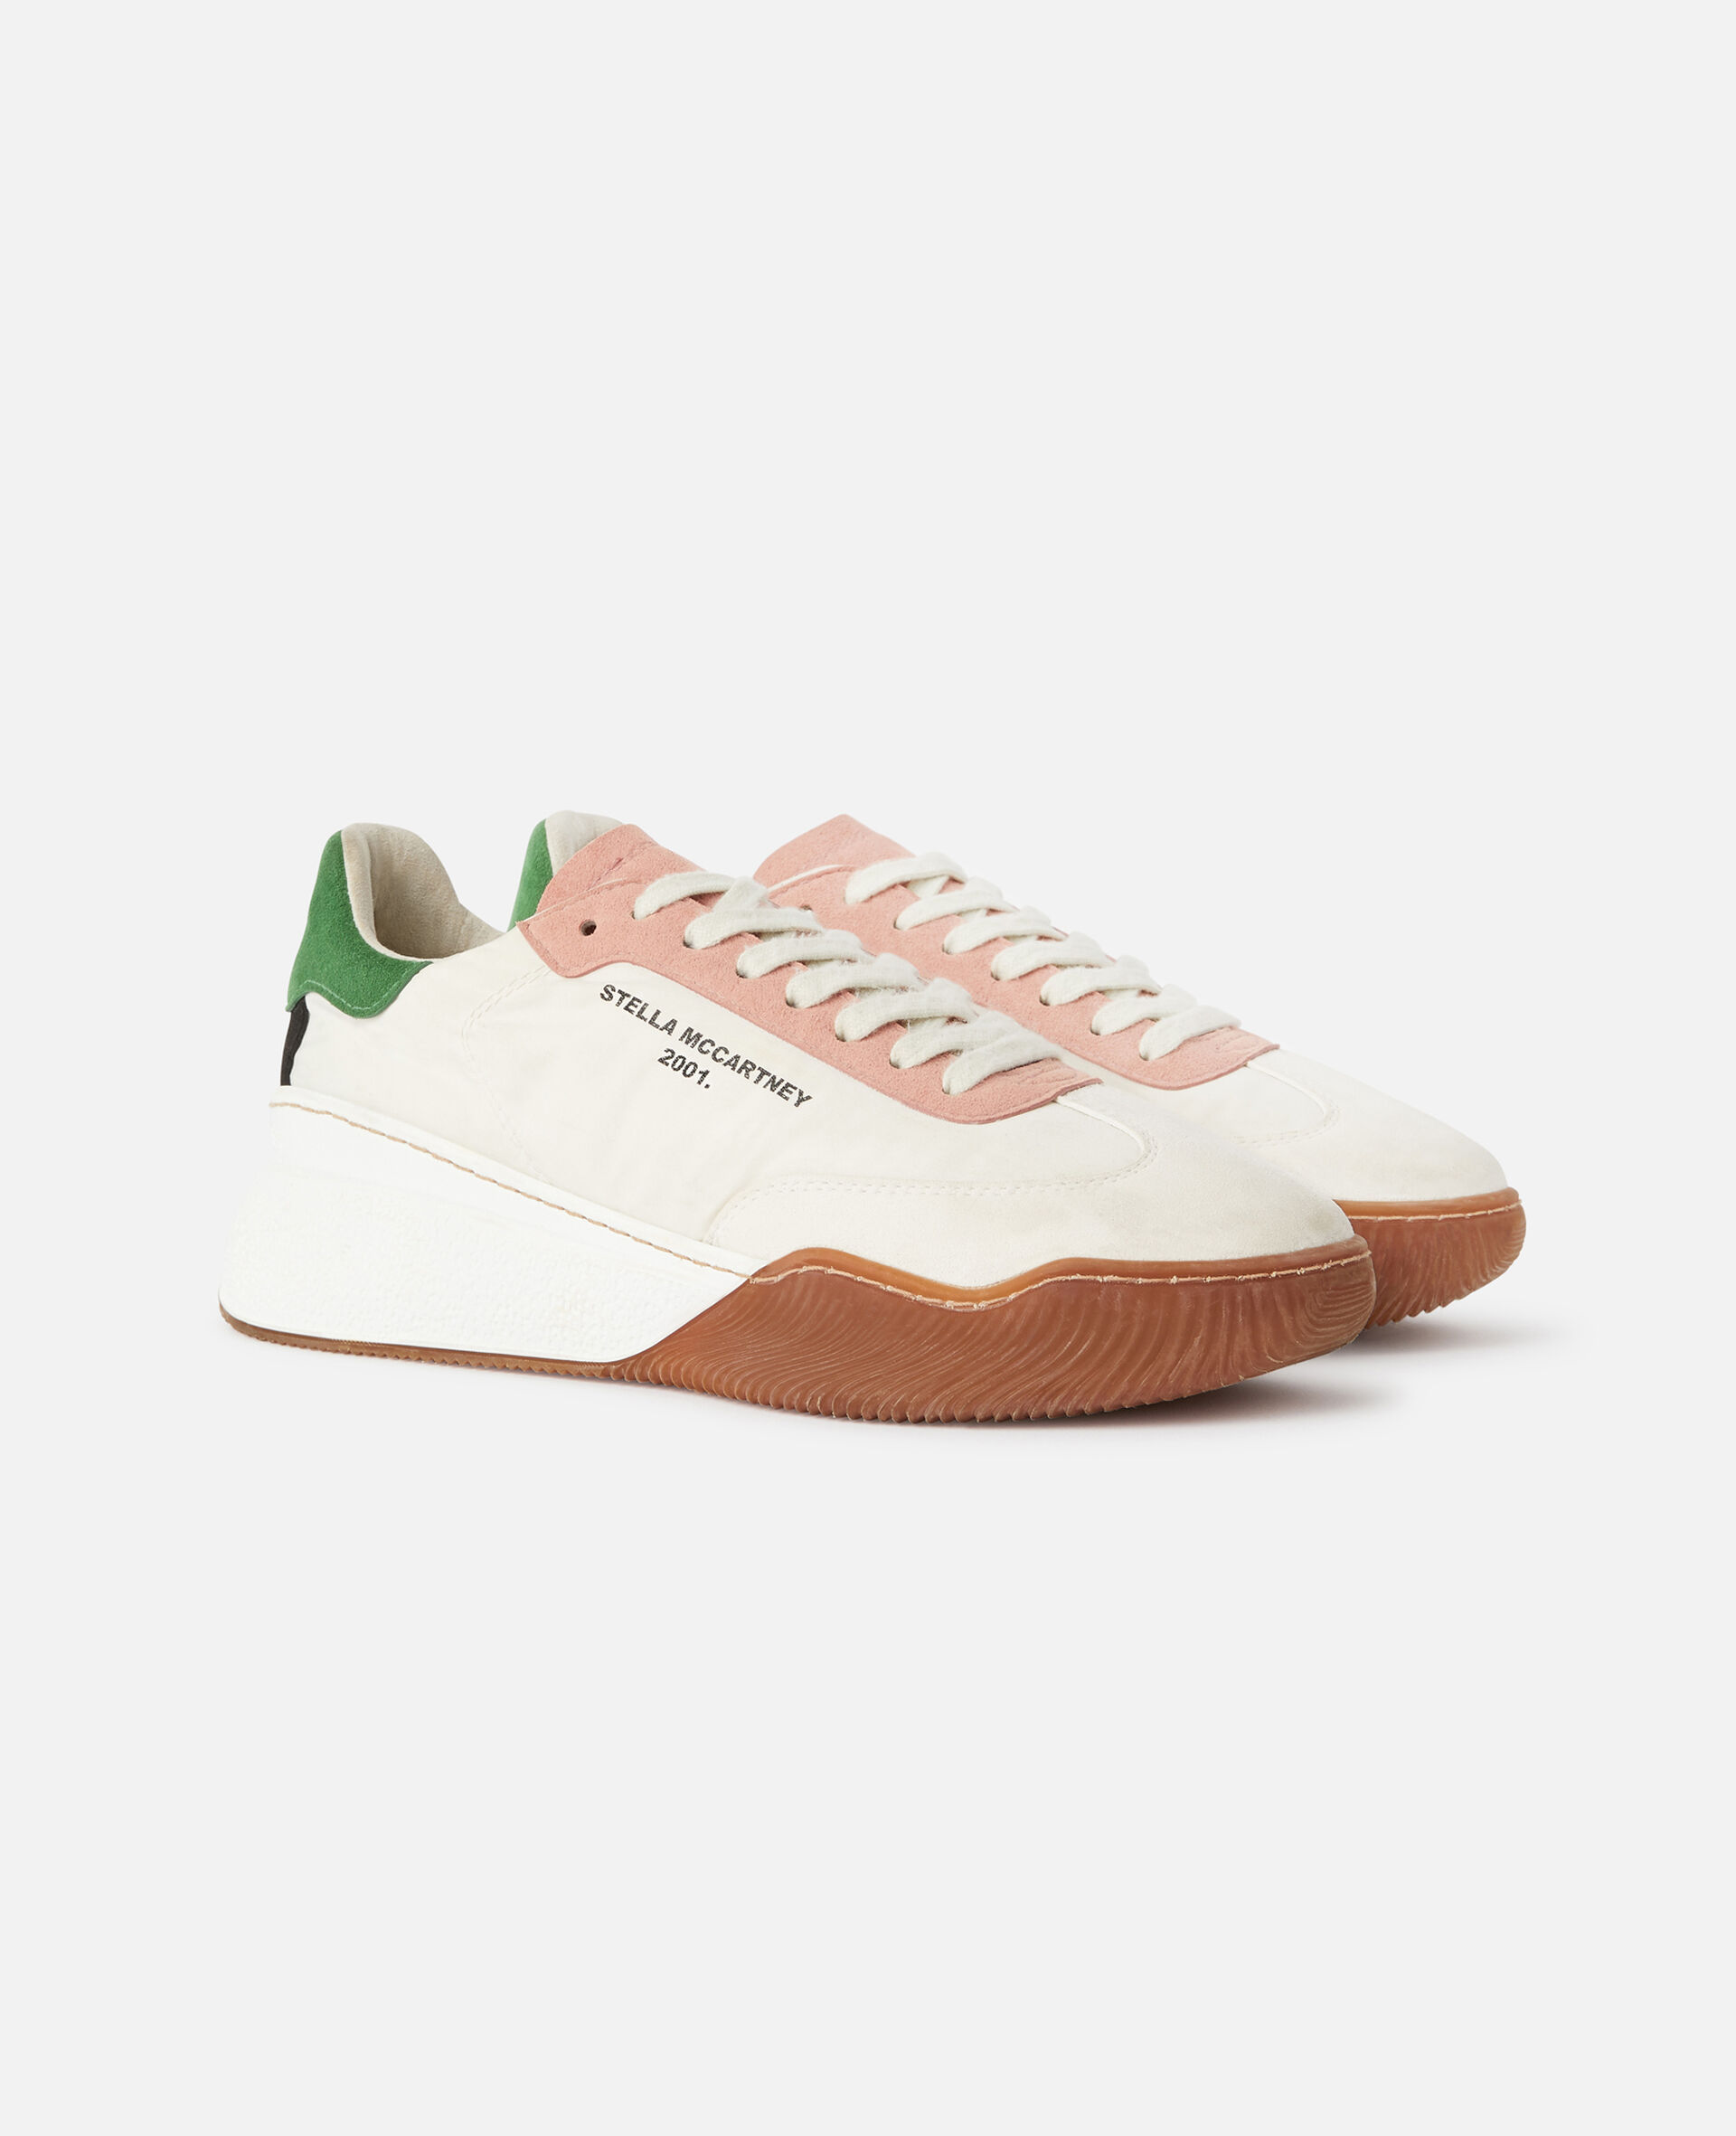 Loop Lace-up Sneakers-Multicolour-large image number 1